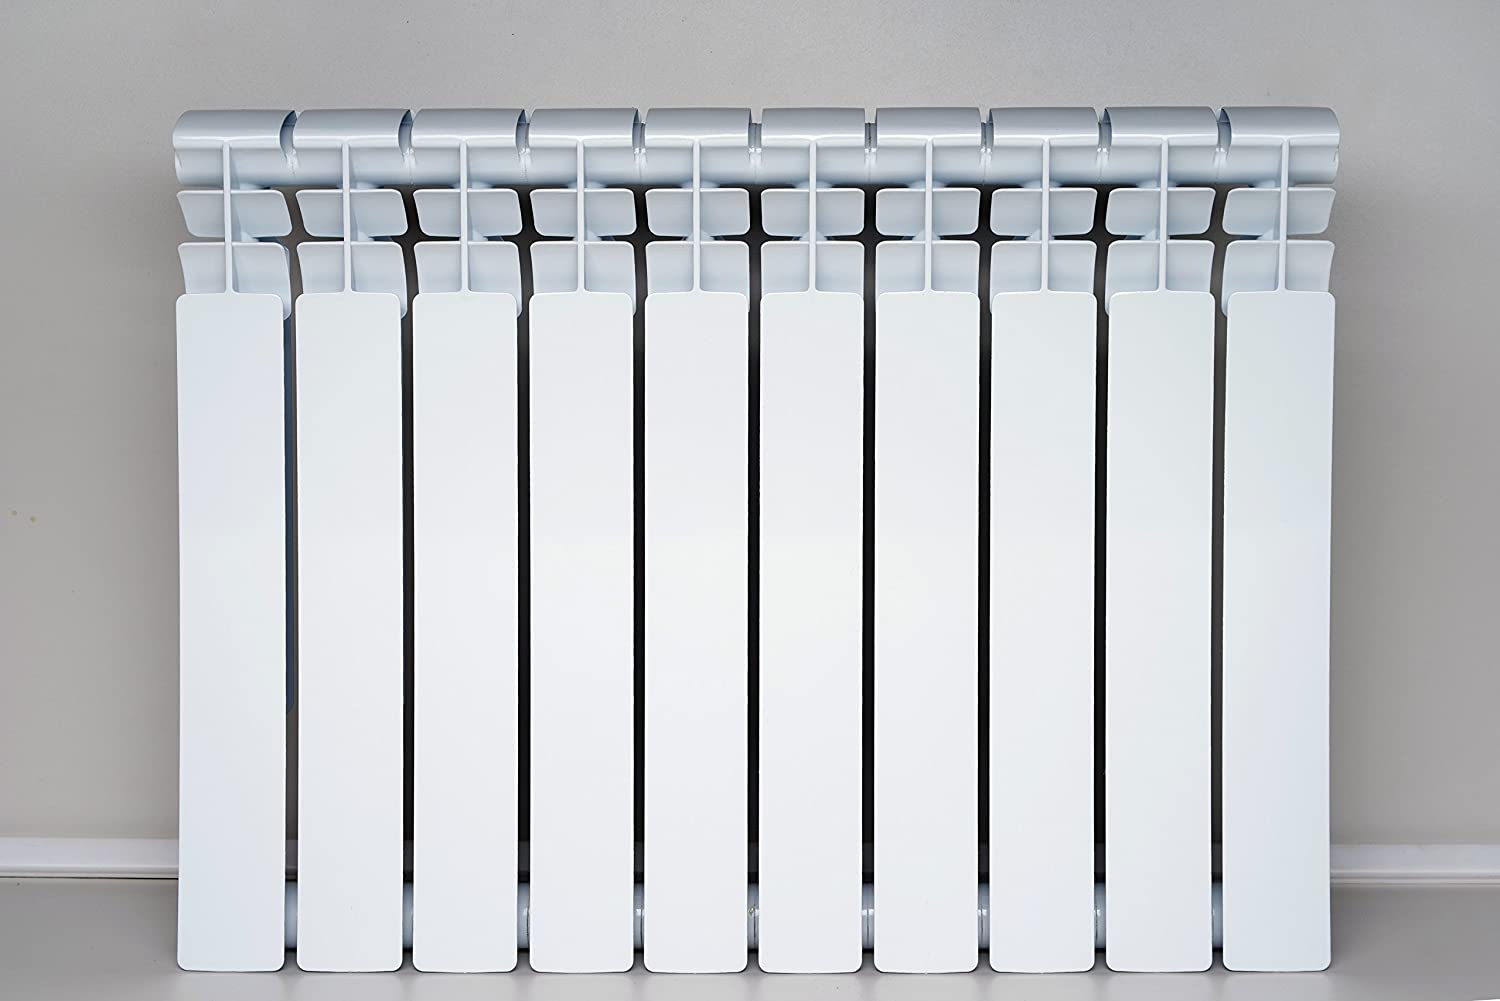 Amazon.com: Radiant Heat Radiator - Wall-Mount Radiant Heater 10 Sections 700BTU/hr with Brackets: Kitchen & Dining